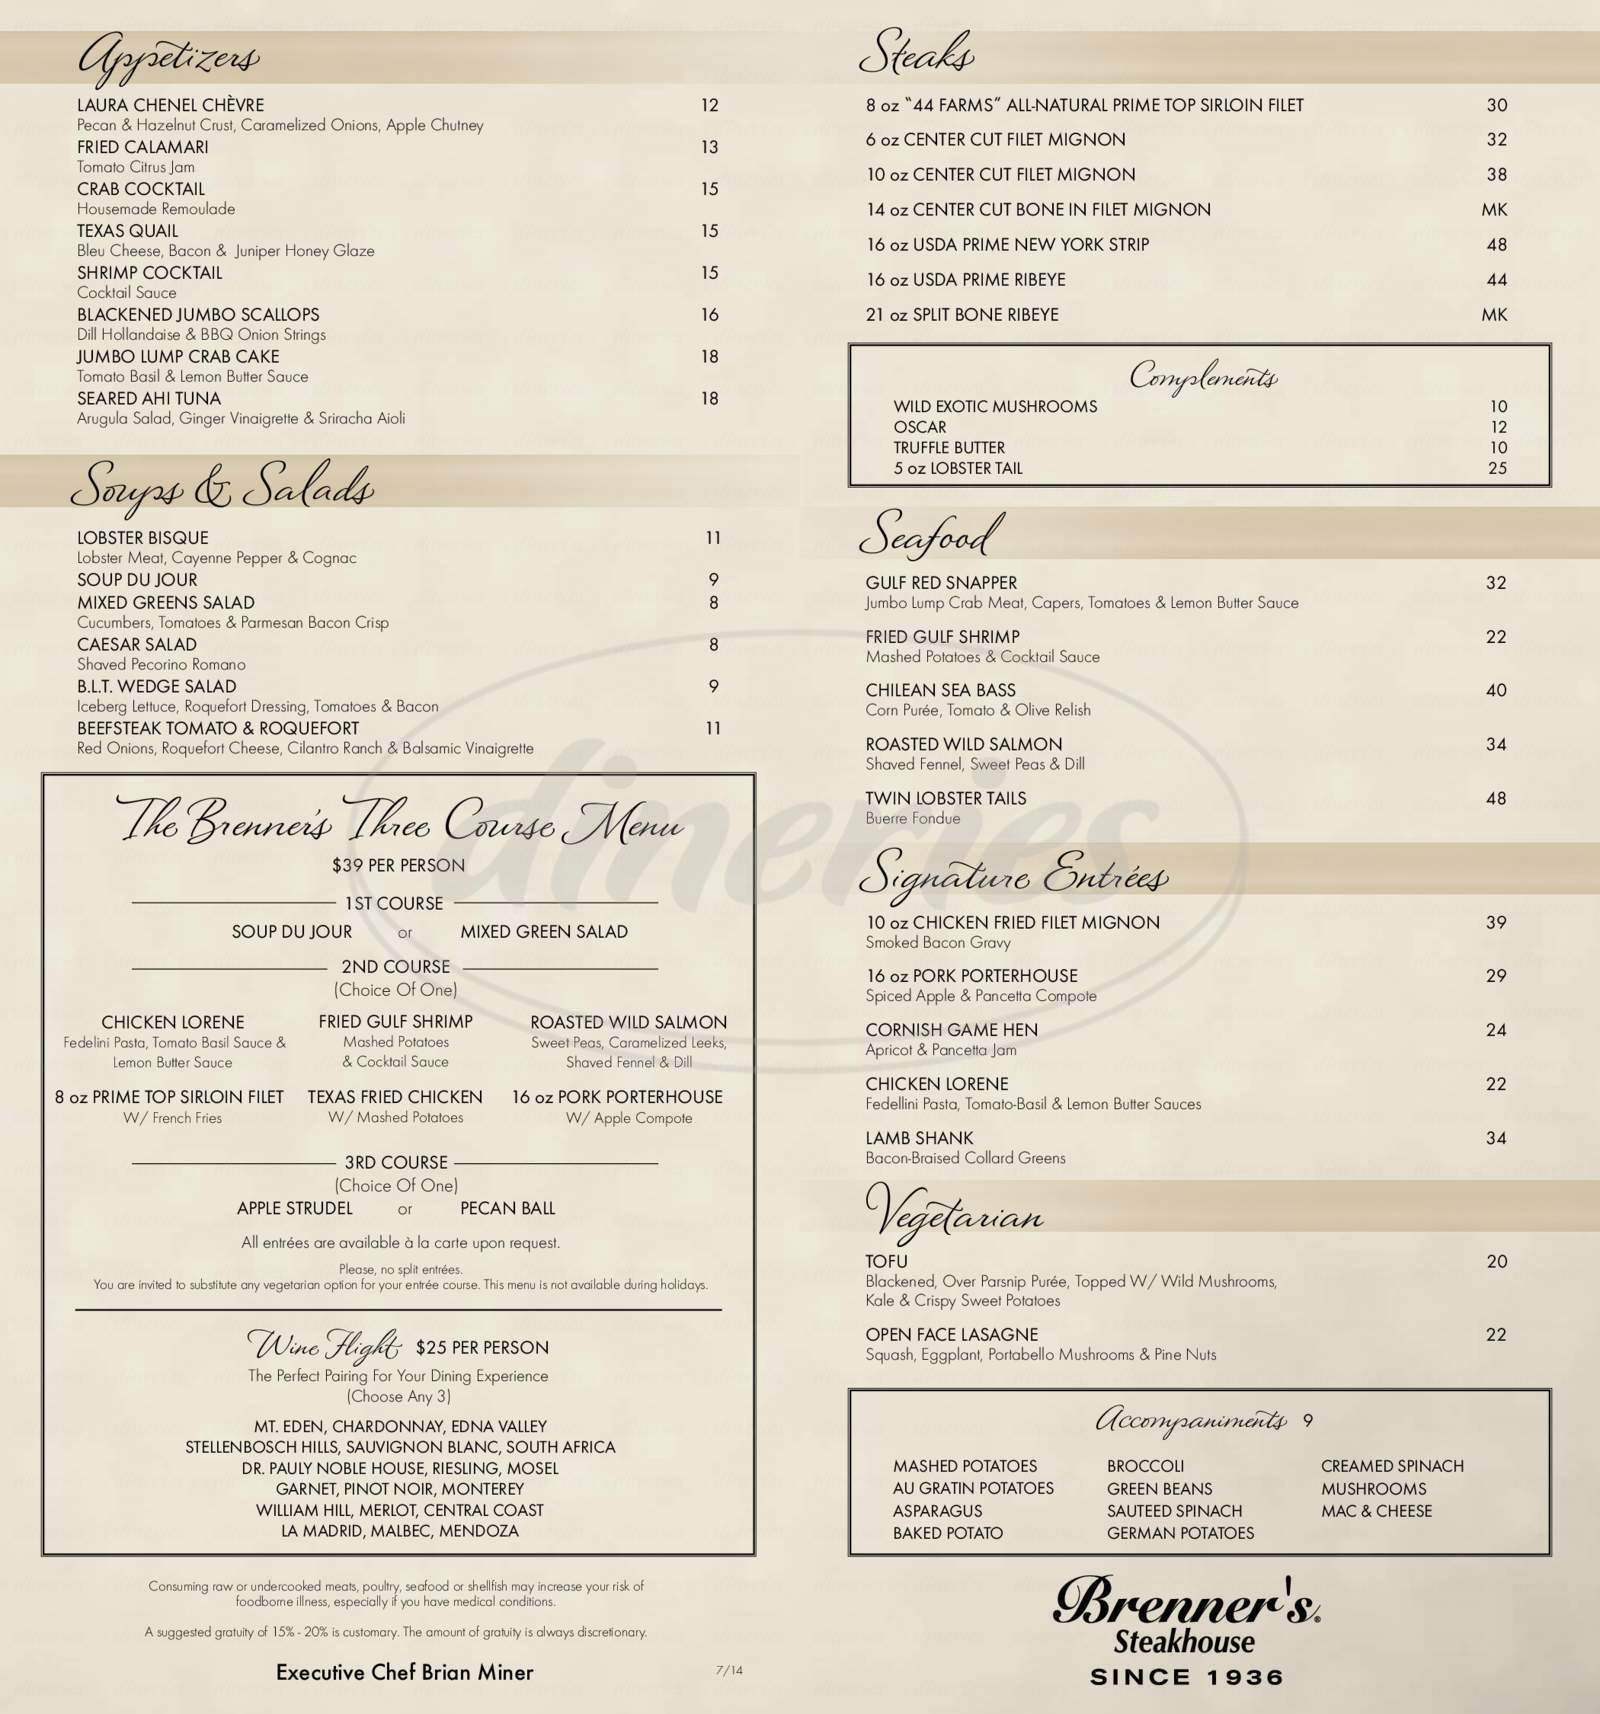 menu for Brenner's Steakhouse